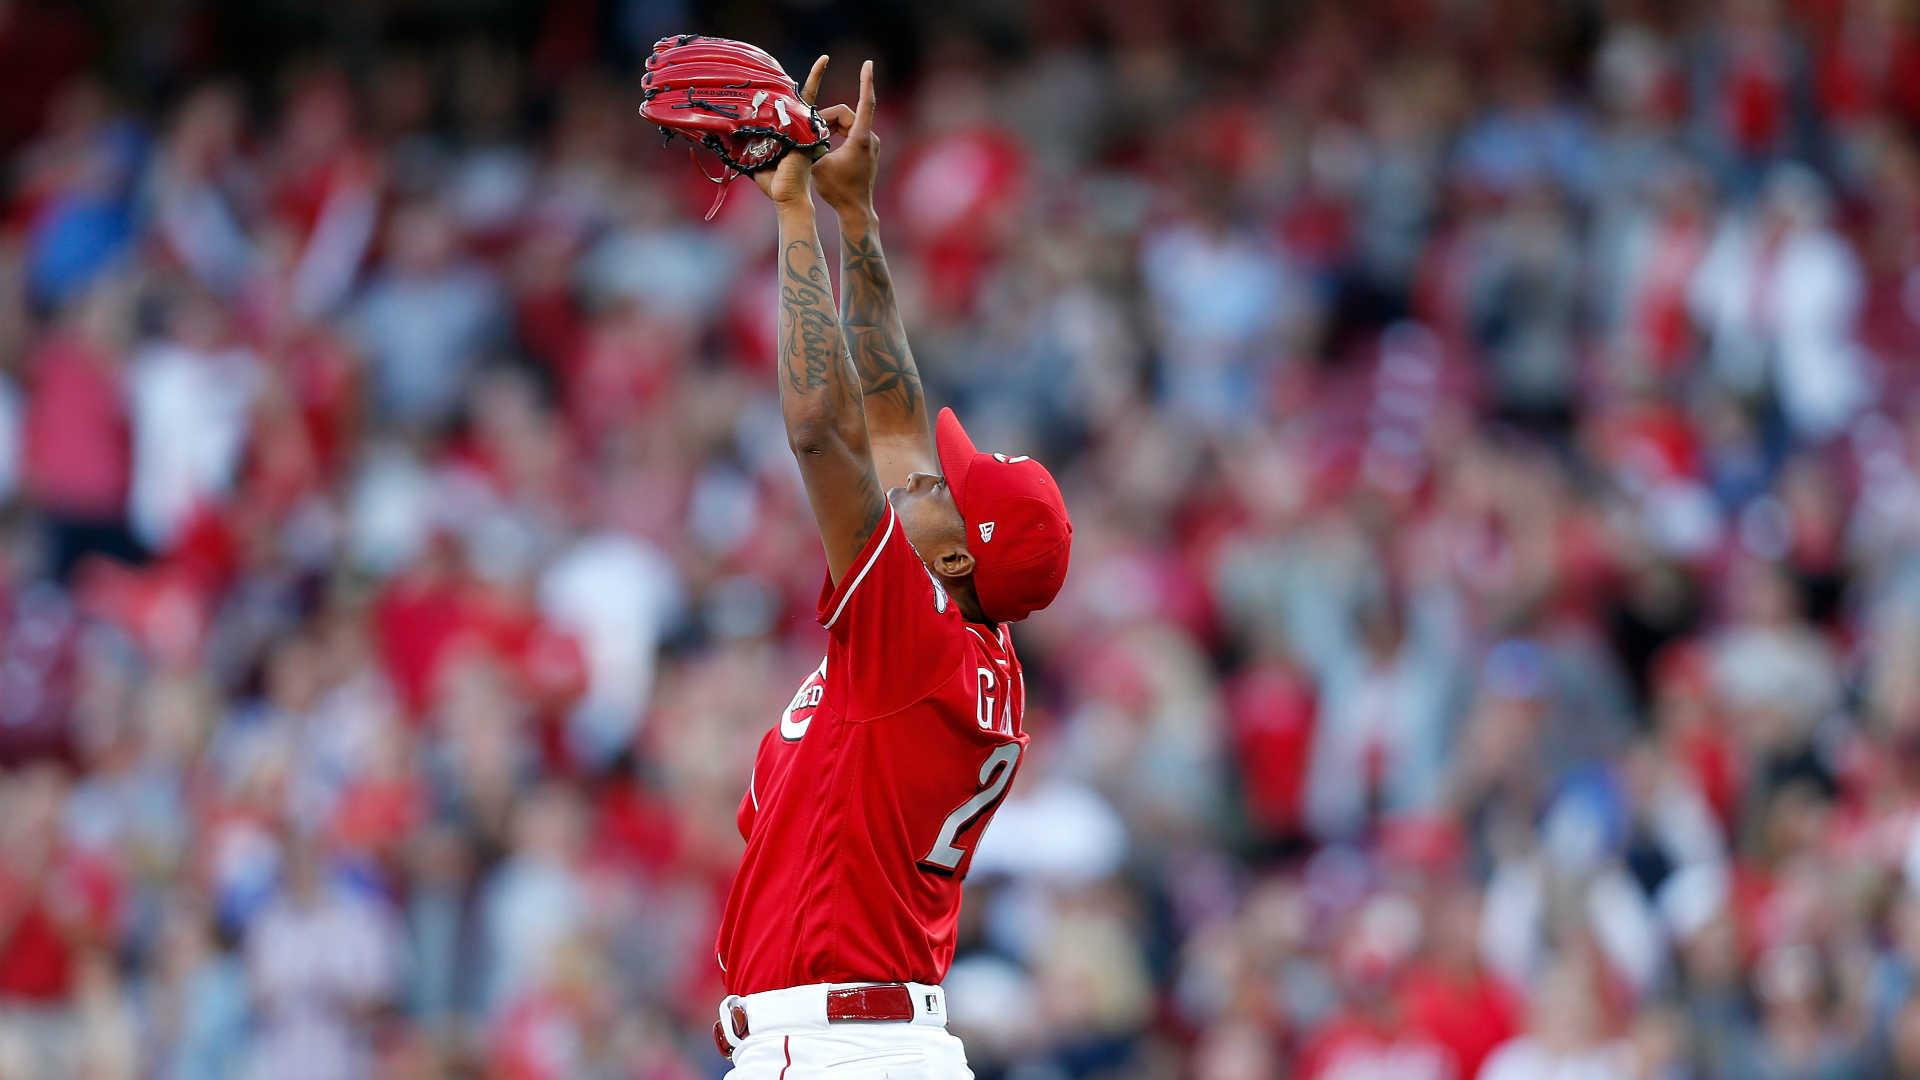 Reds closer Raisel Iglesias signs 3